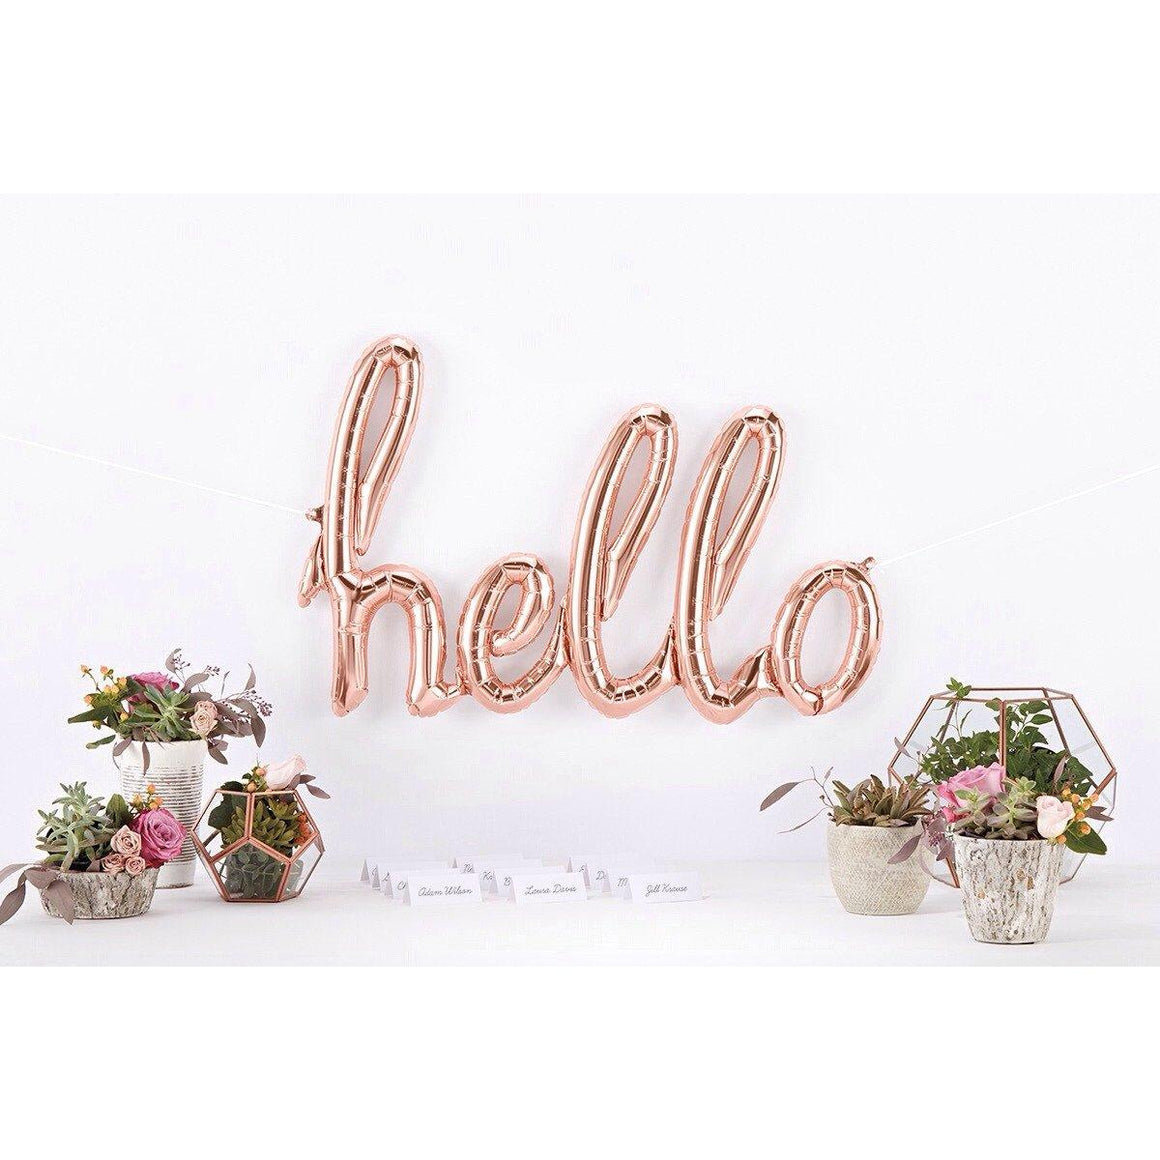 BALLOONS - SCRIPT ROSE GOLD HELLO, Balloons, Northstar (Surprize Enterprize) - Bon + Co. Party Studio